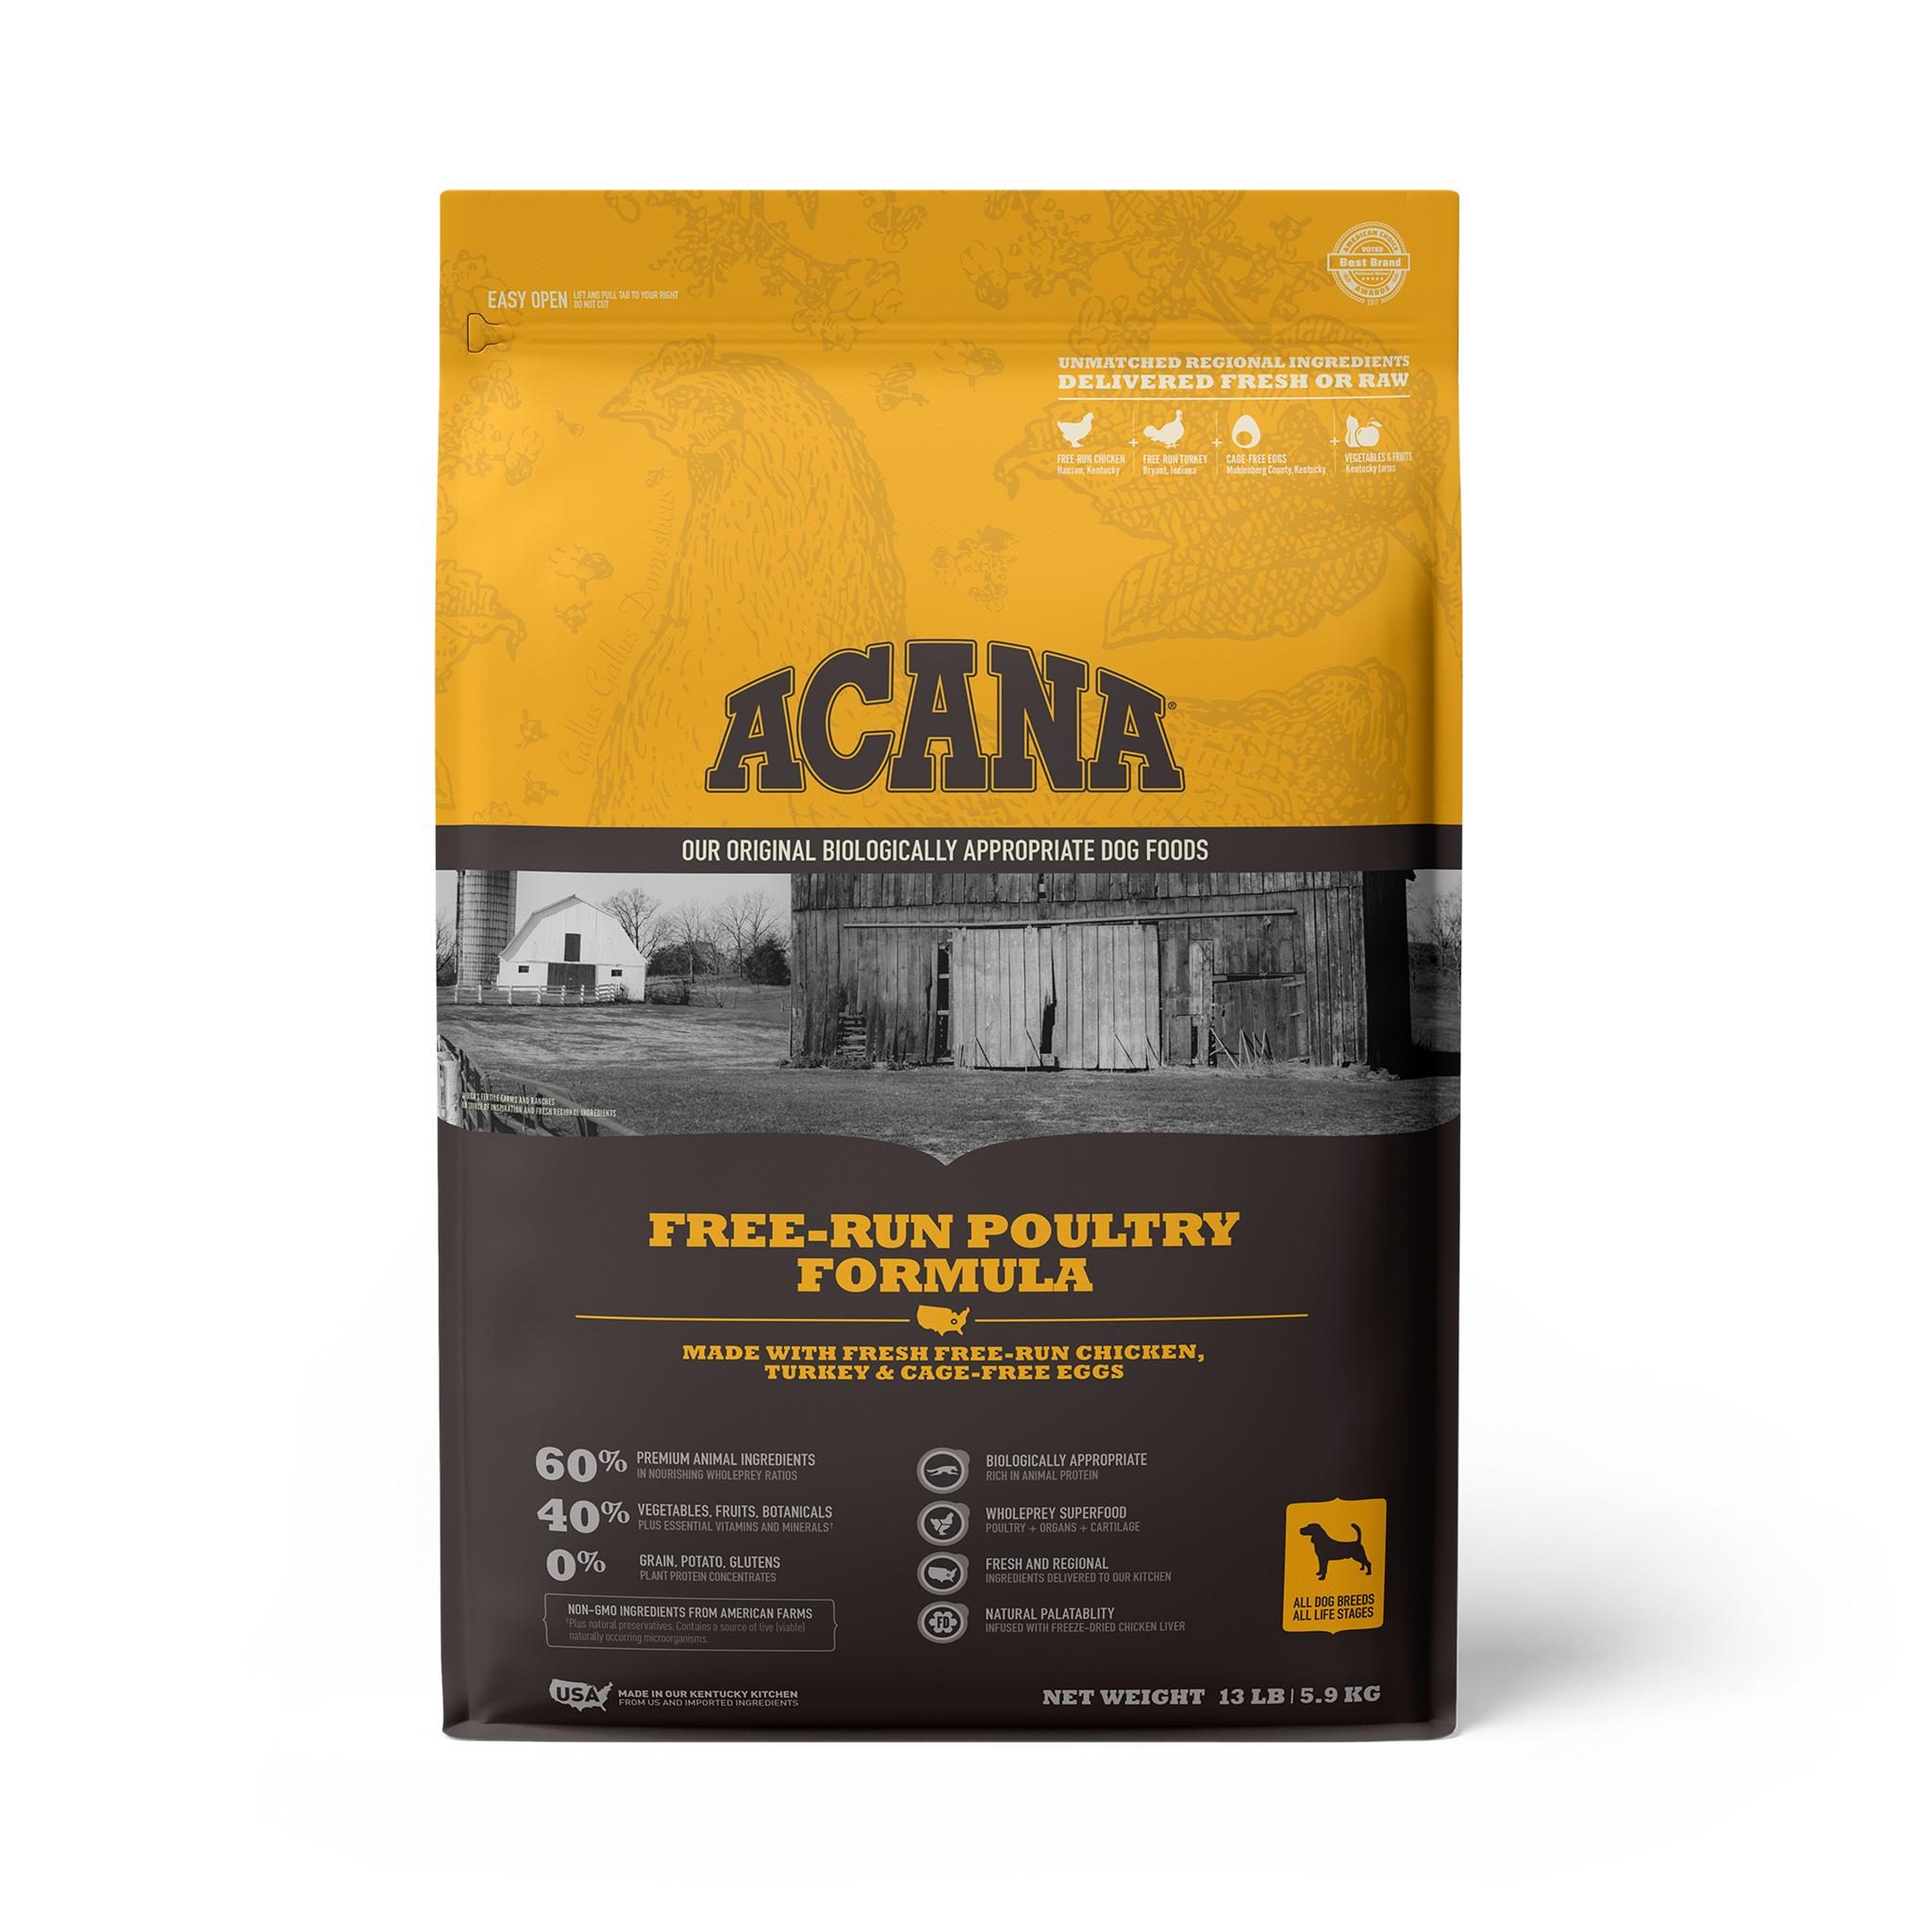 ACANA Free-Run Poultry Grain-Free Dry Dog Food, 13-lb